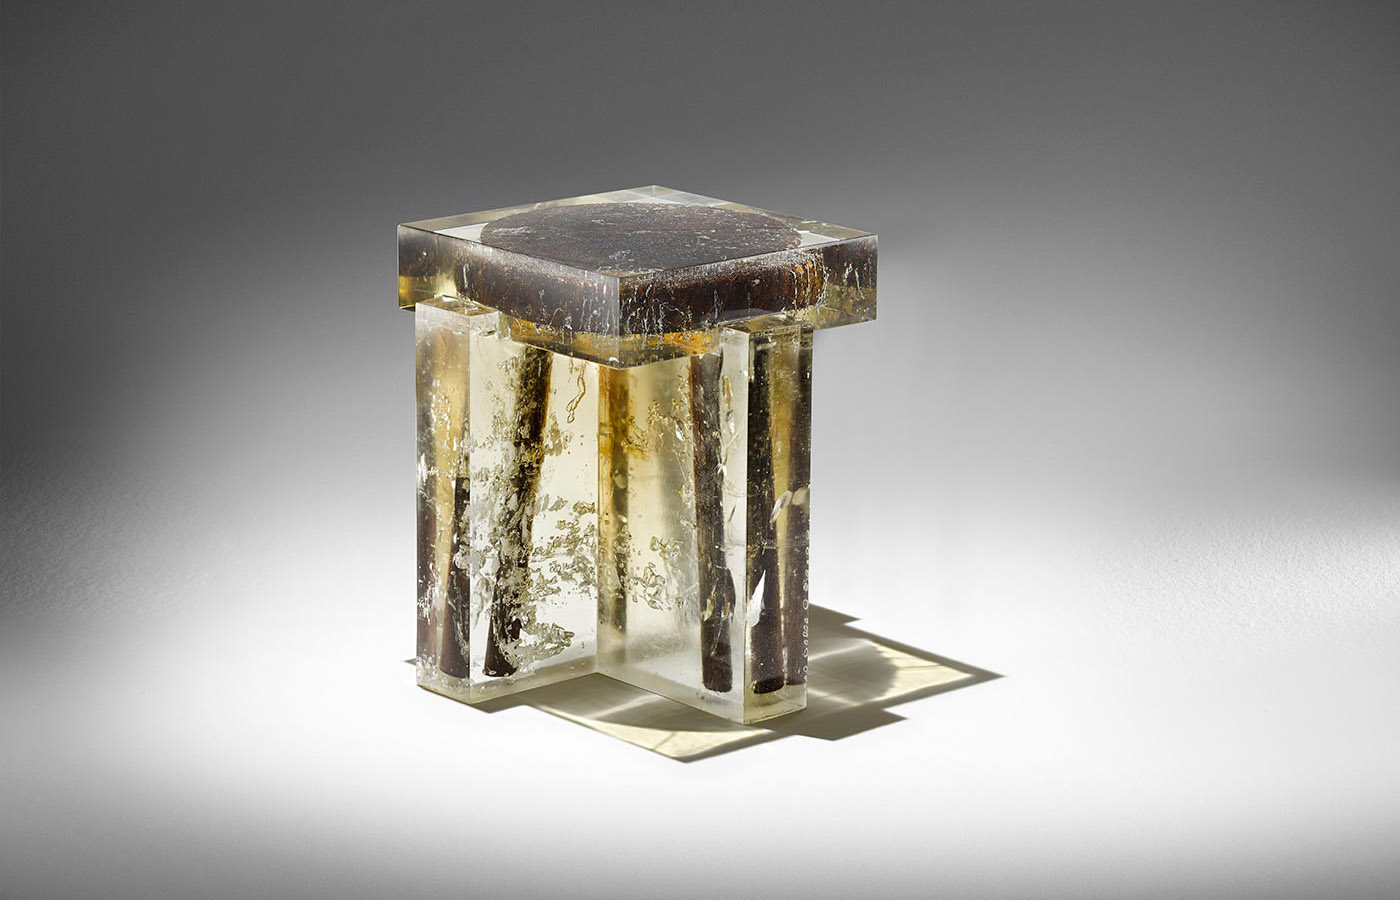 studio-nucleo_souvenir-of-the-last-century_stool02_1_big